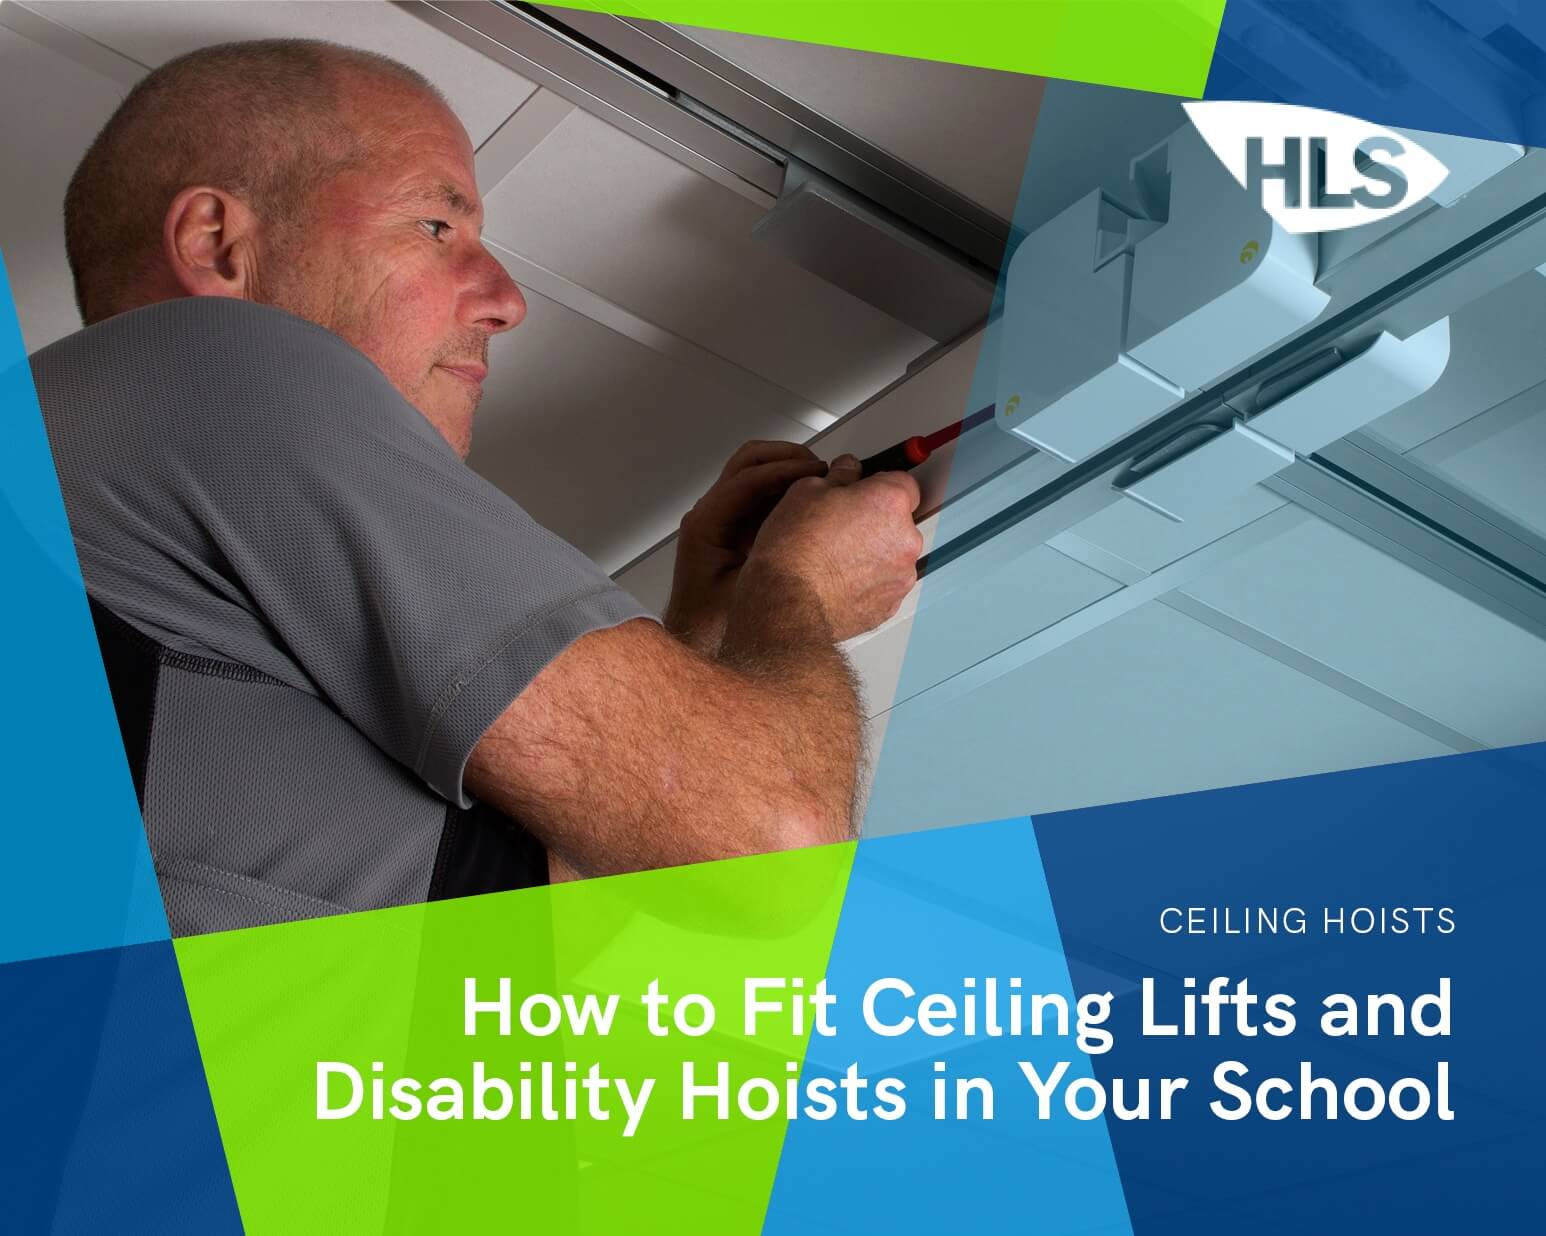 How to Fit Ceiling Lifts and Disability Hoists in Your School